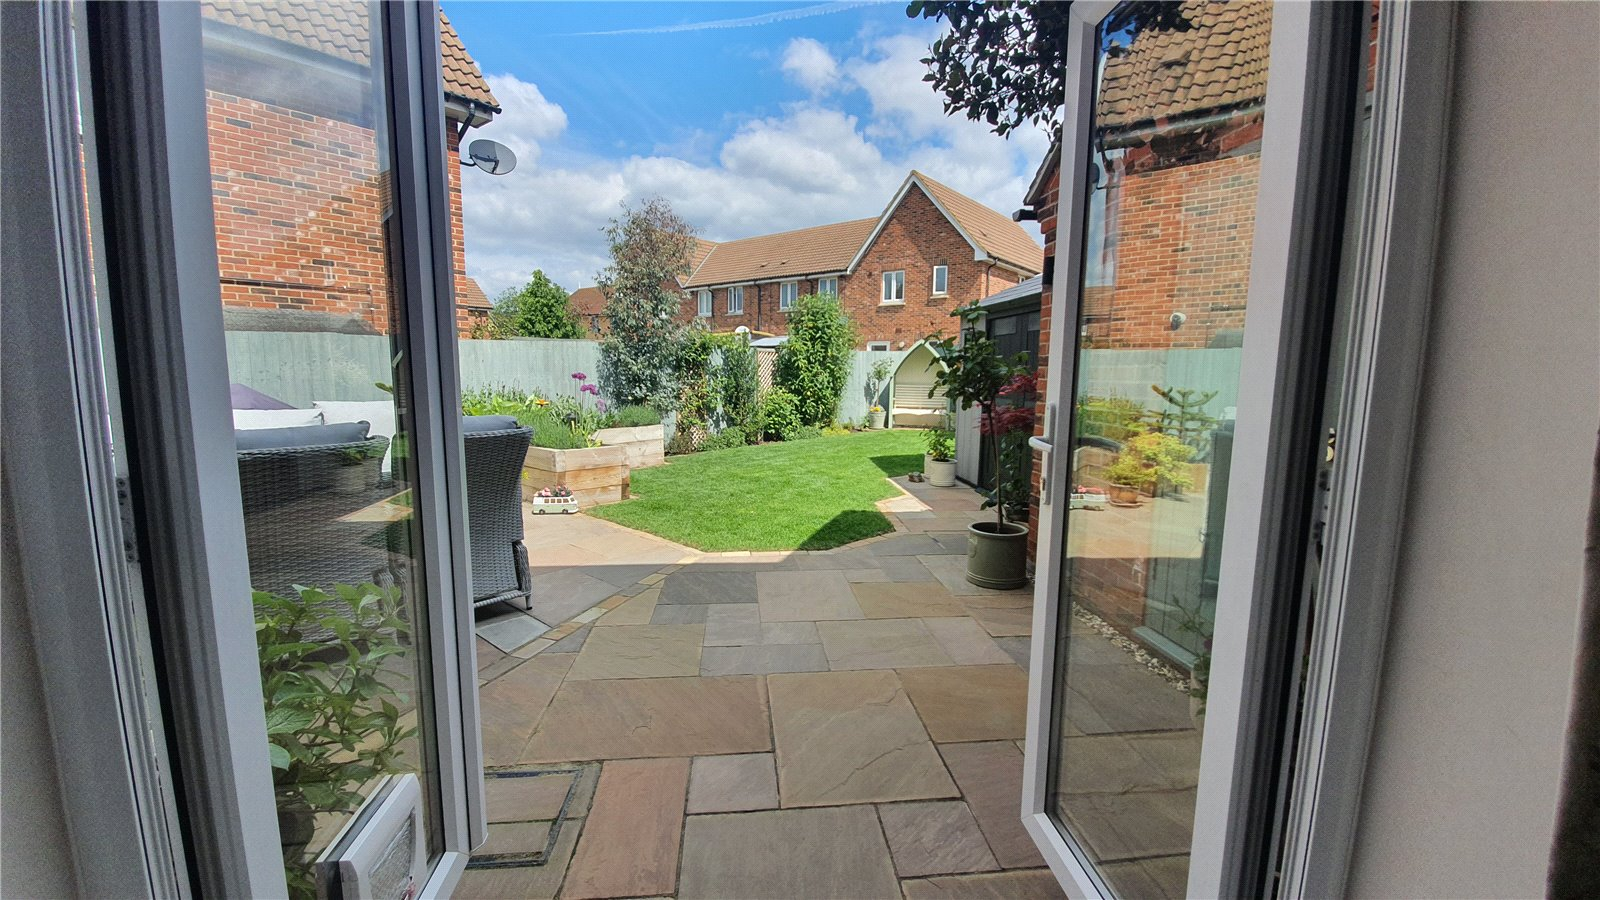 3 bed house for sale in Harvest Drive, St Neots 5